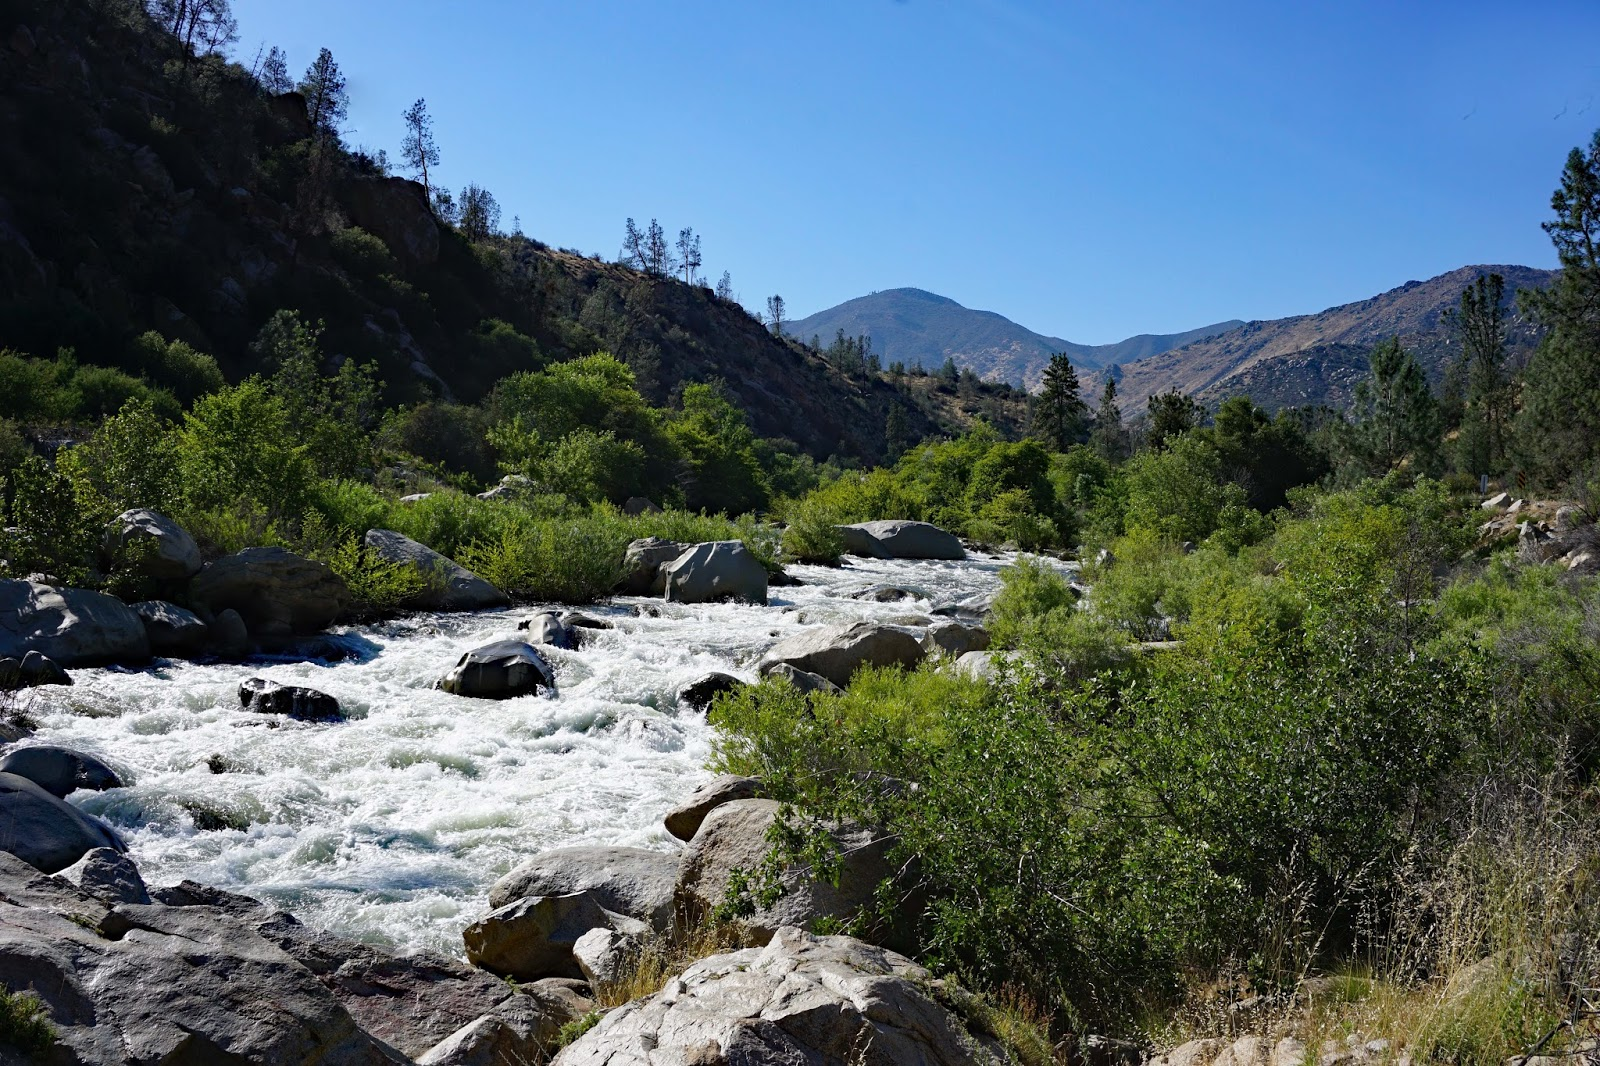 Voyagers on Wheels: California June 2016 Sequoia National Forest